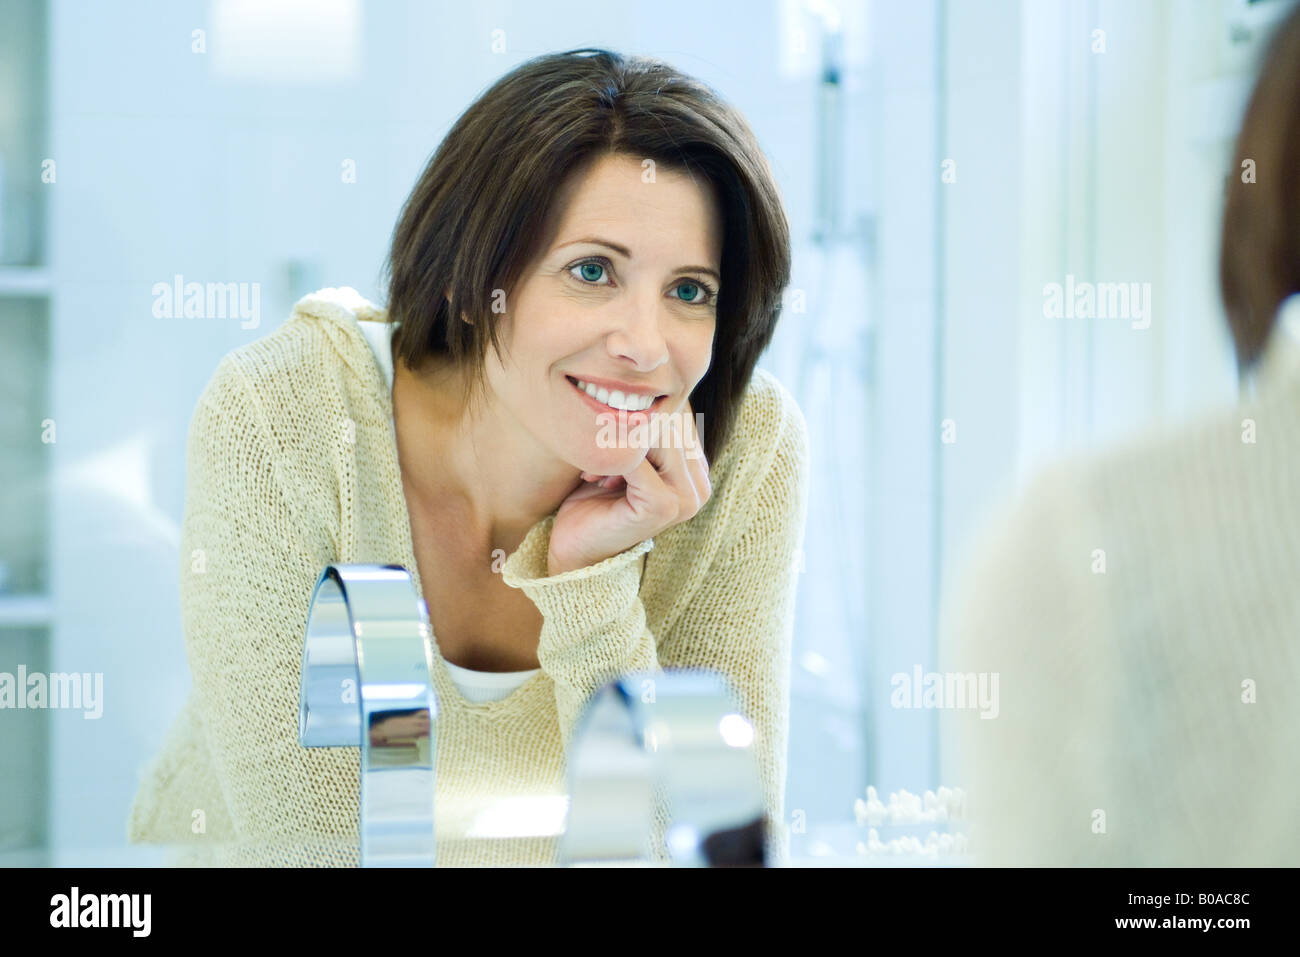 Woman smiling at self in bathroom mirror - Stock Image